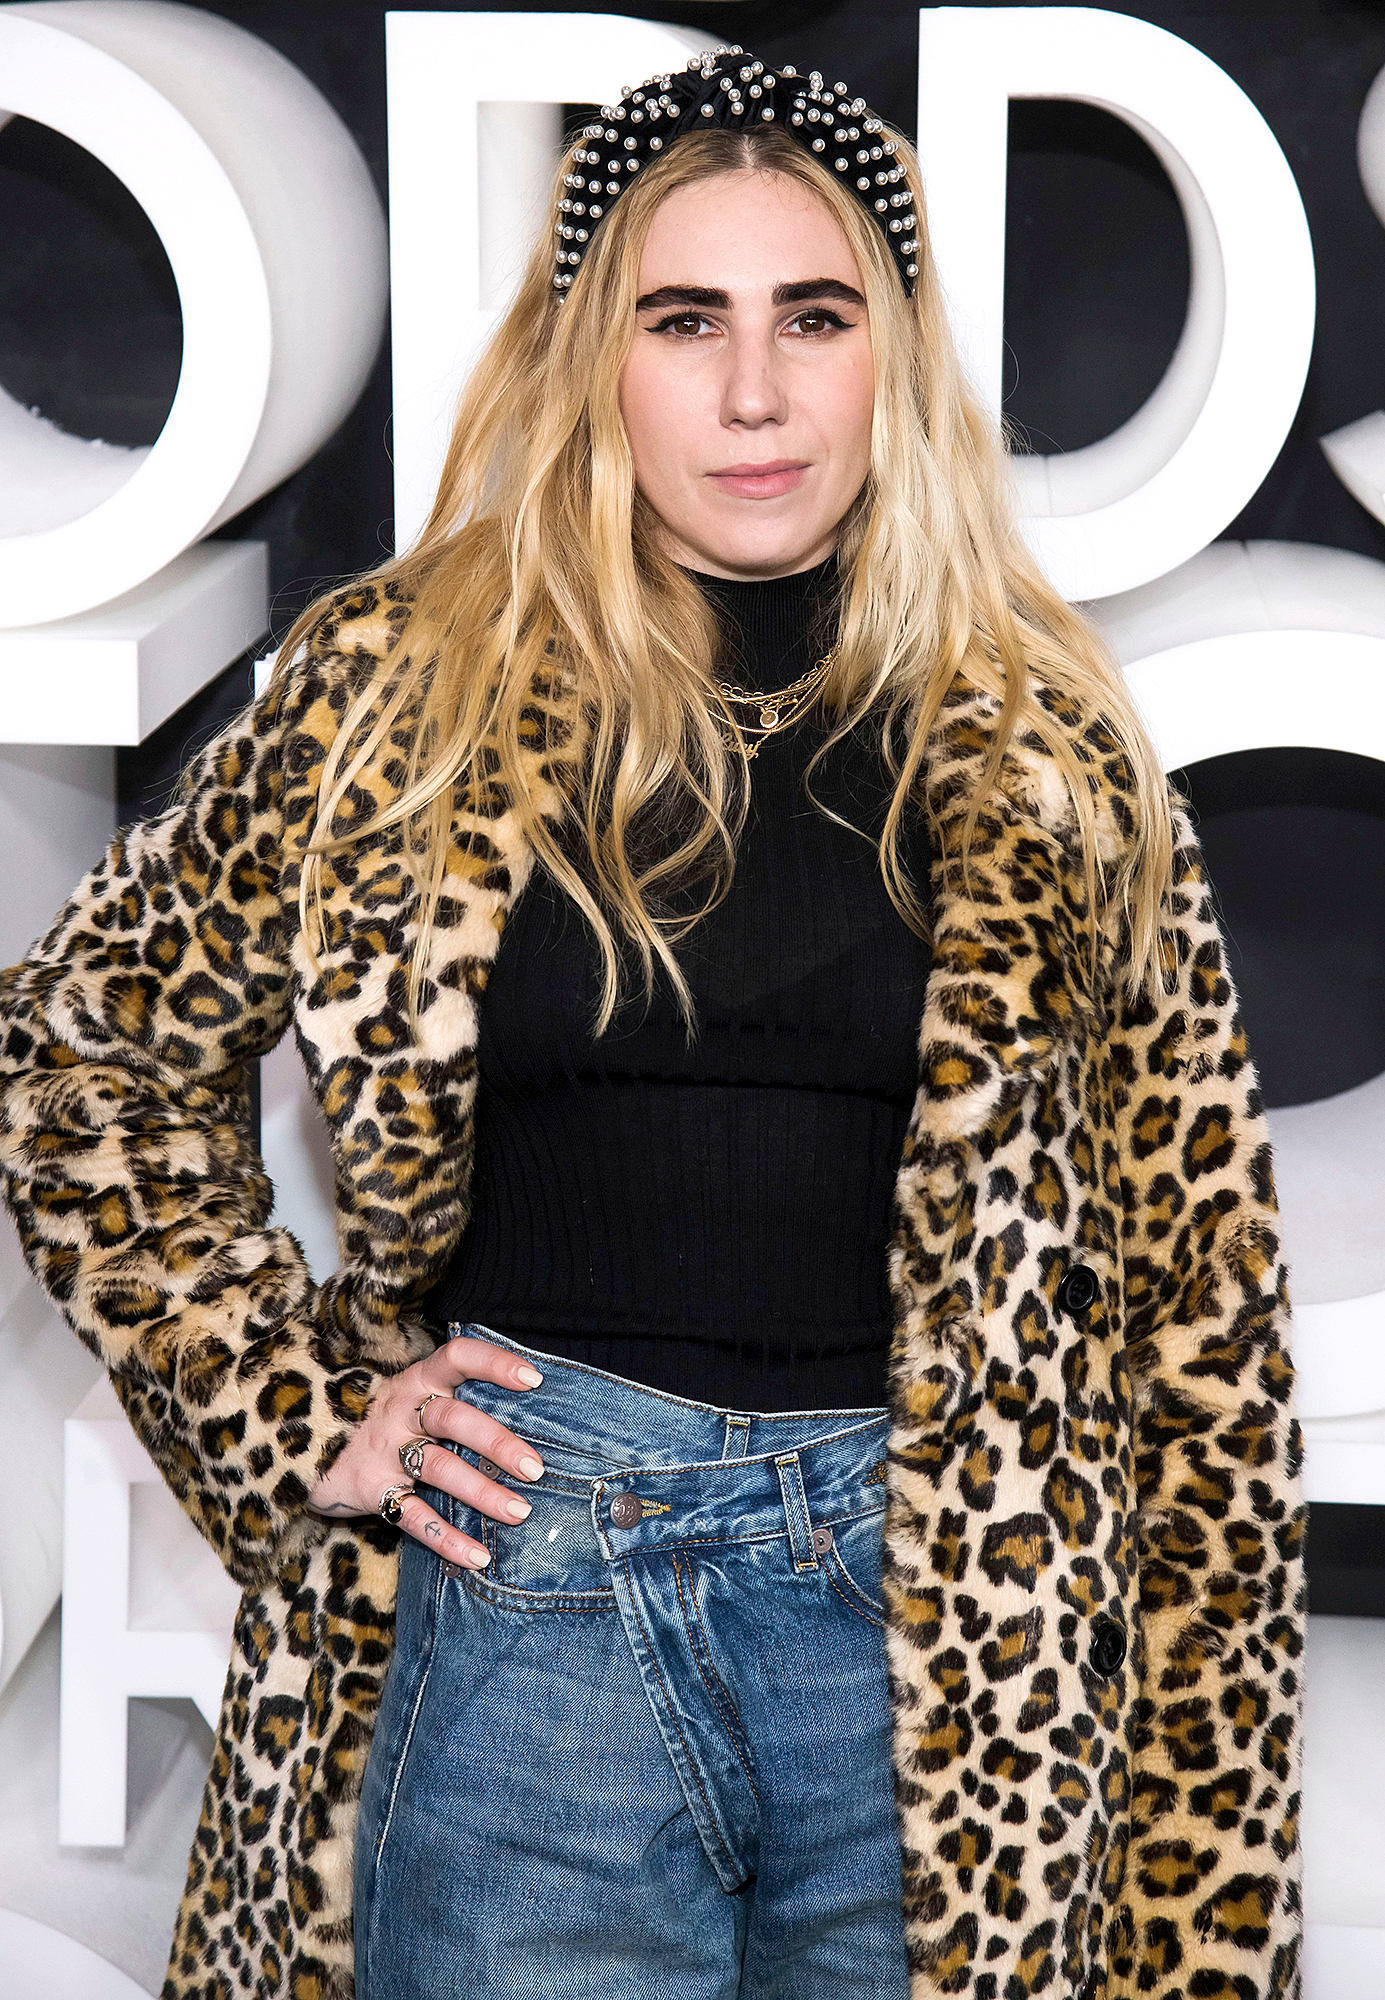 Zosia-Mamet-attends-the-Nordstrom-NYC-Flagship-store-opening-party